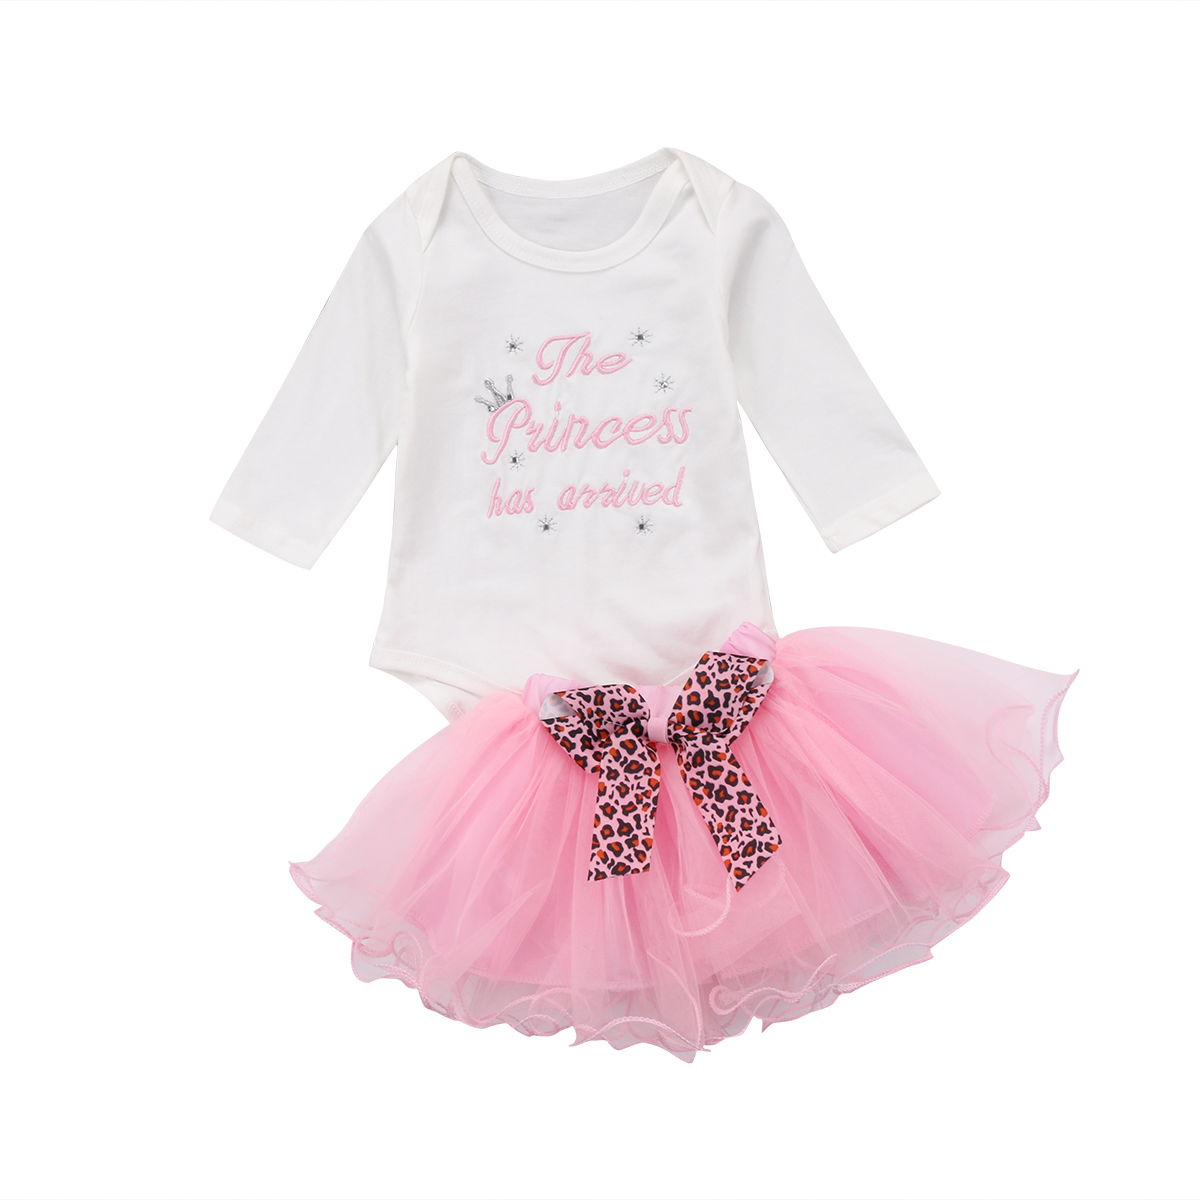 2018 Infant Newborn Baby Girl Cute Clothes Long Sleeve Letter Rompers Playsuit Bow Tutu Skirt Outfit Set Clothes